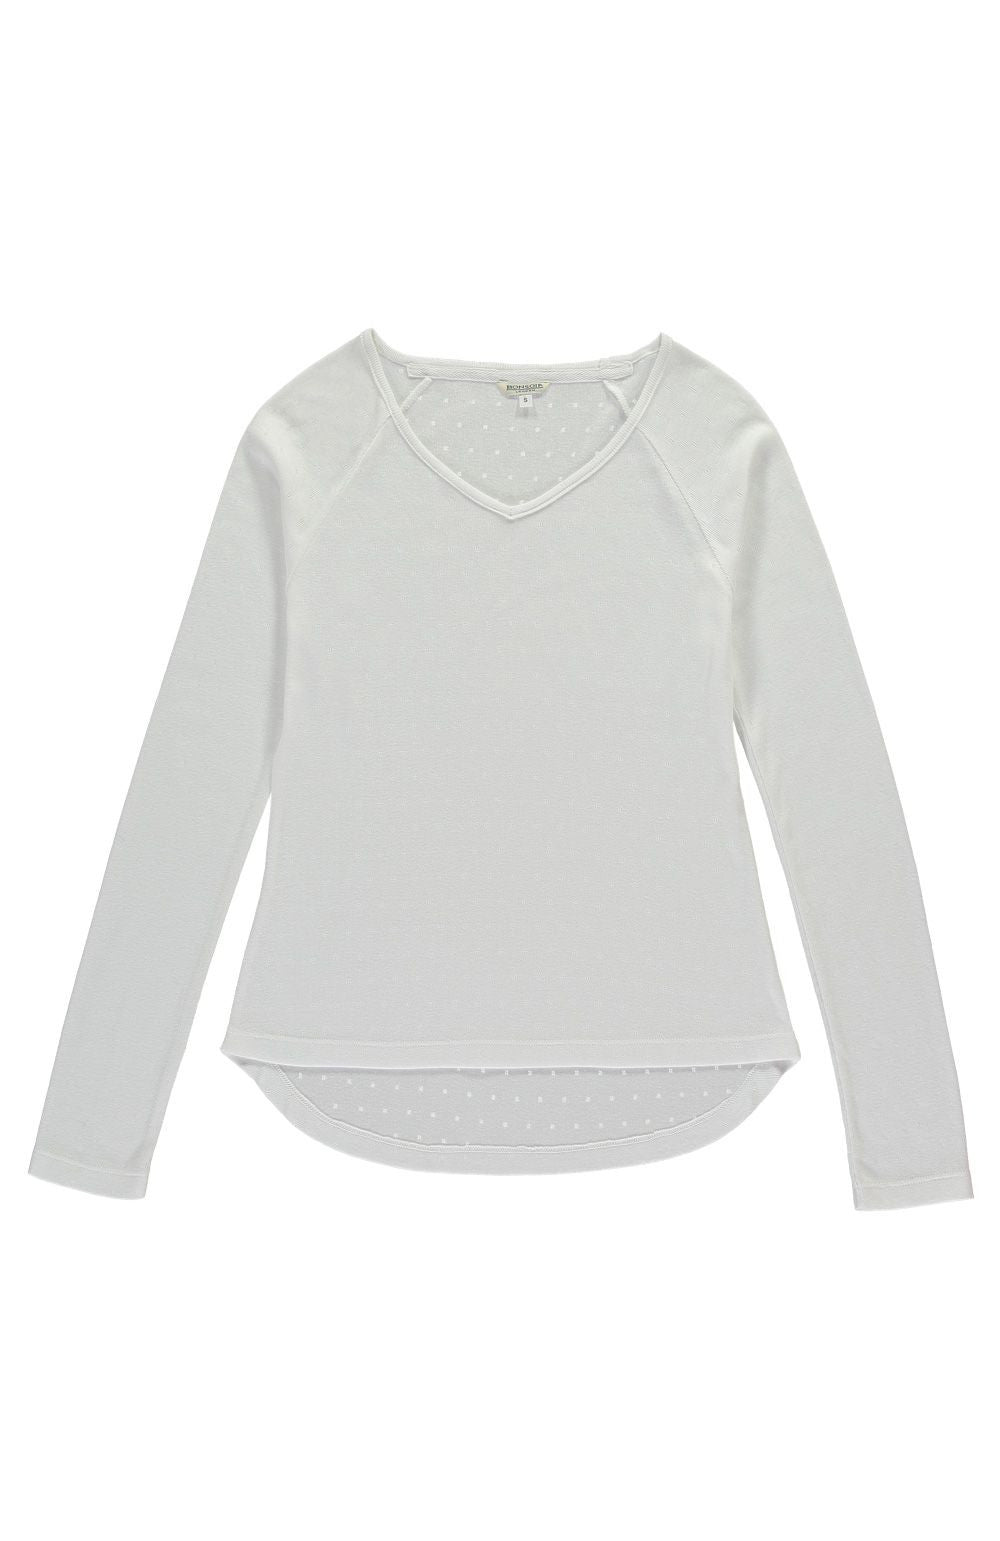 Pointelle Raglan Sleeve Top (lkpr) - White